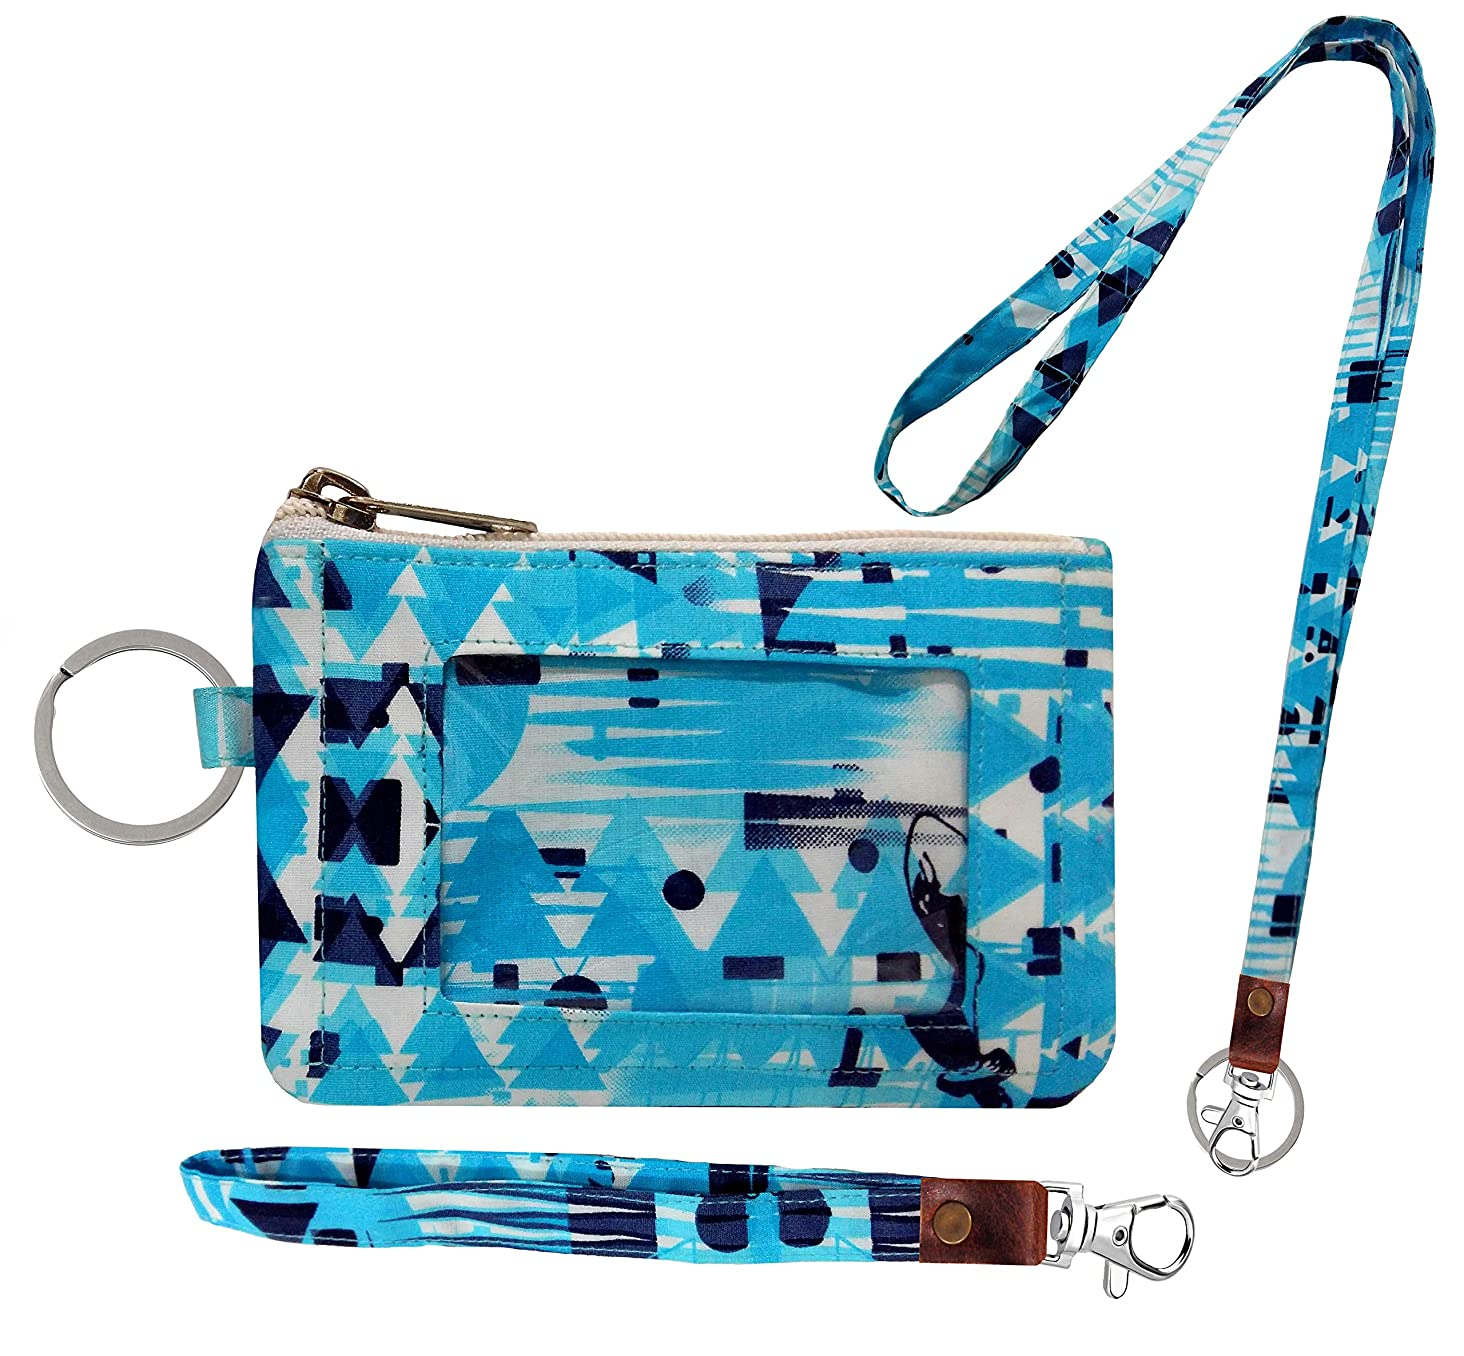 Zip ID Case, Lanyard & Wrist-let/Key Wallet/Credit Card Case Coins Purse with ID Window, Lanyard & Wrist-let/Cute ID Holder/Badge Clips